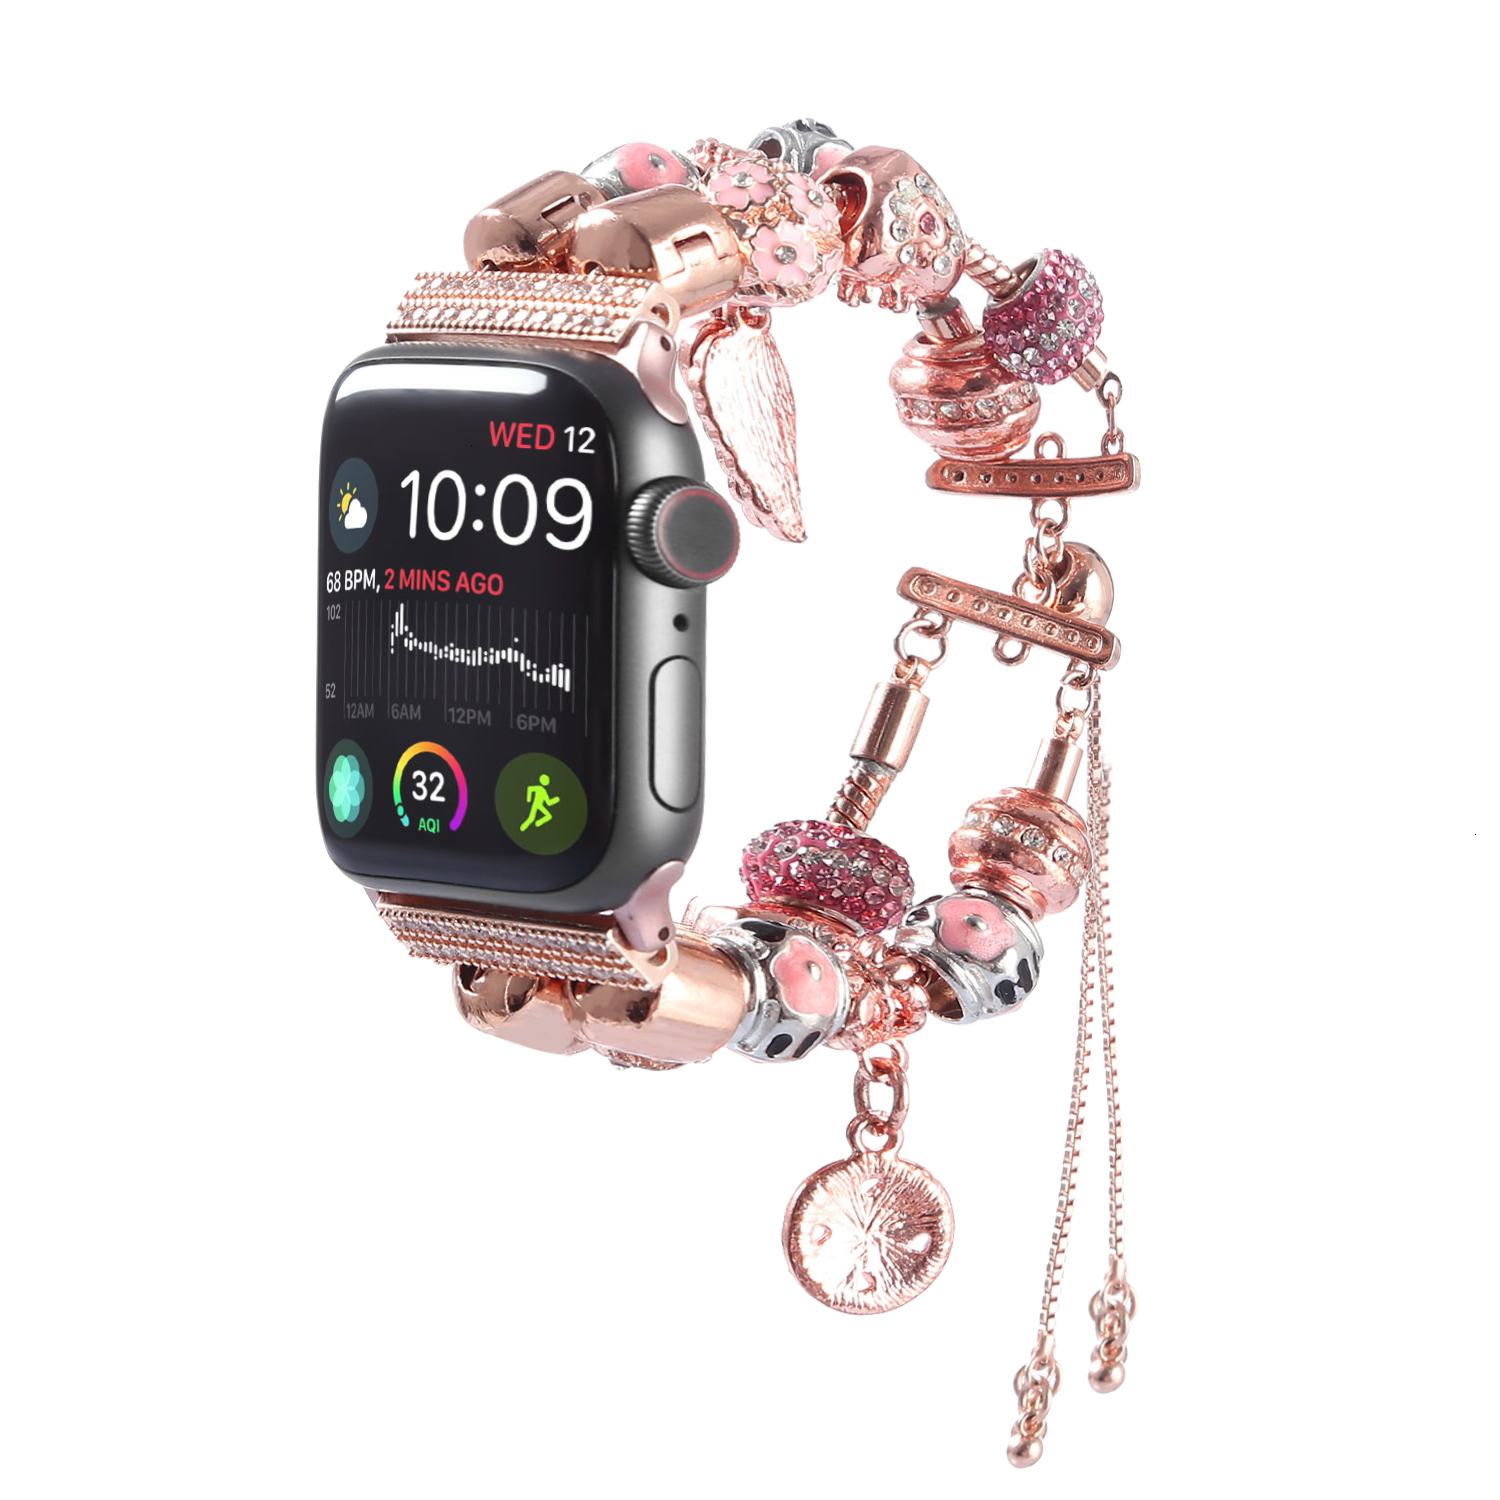 DIY Manual Watch Strap For Apple Watch 5 4 Band 44mm Iwatch Sport Bands 42mm Accessories 40mm Series 3 2 Bracelet 38mm Watchband